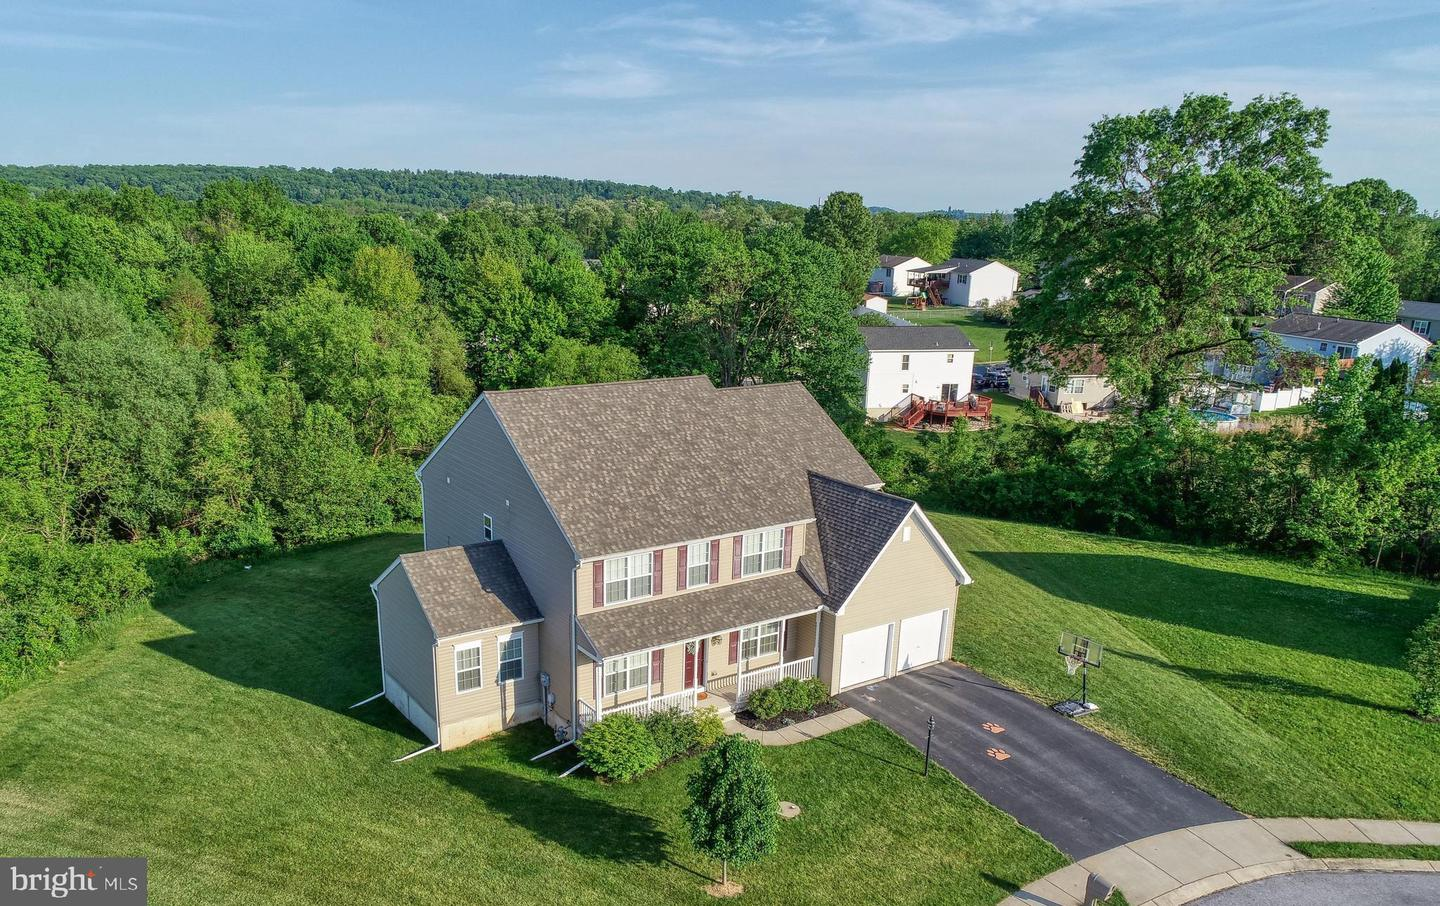 465 GREENFIELD ST, MANCHESTER, PA 17345